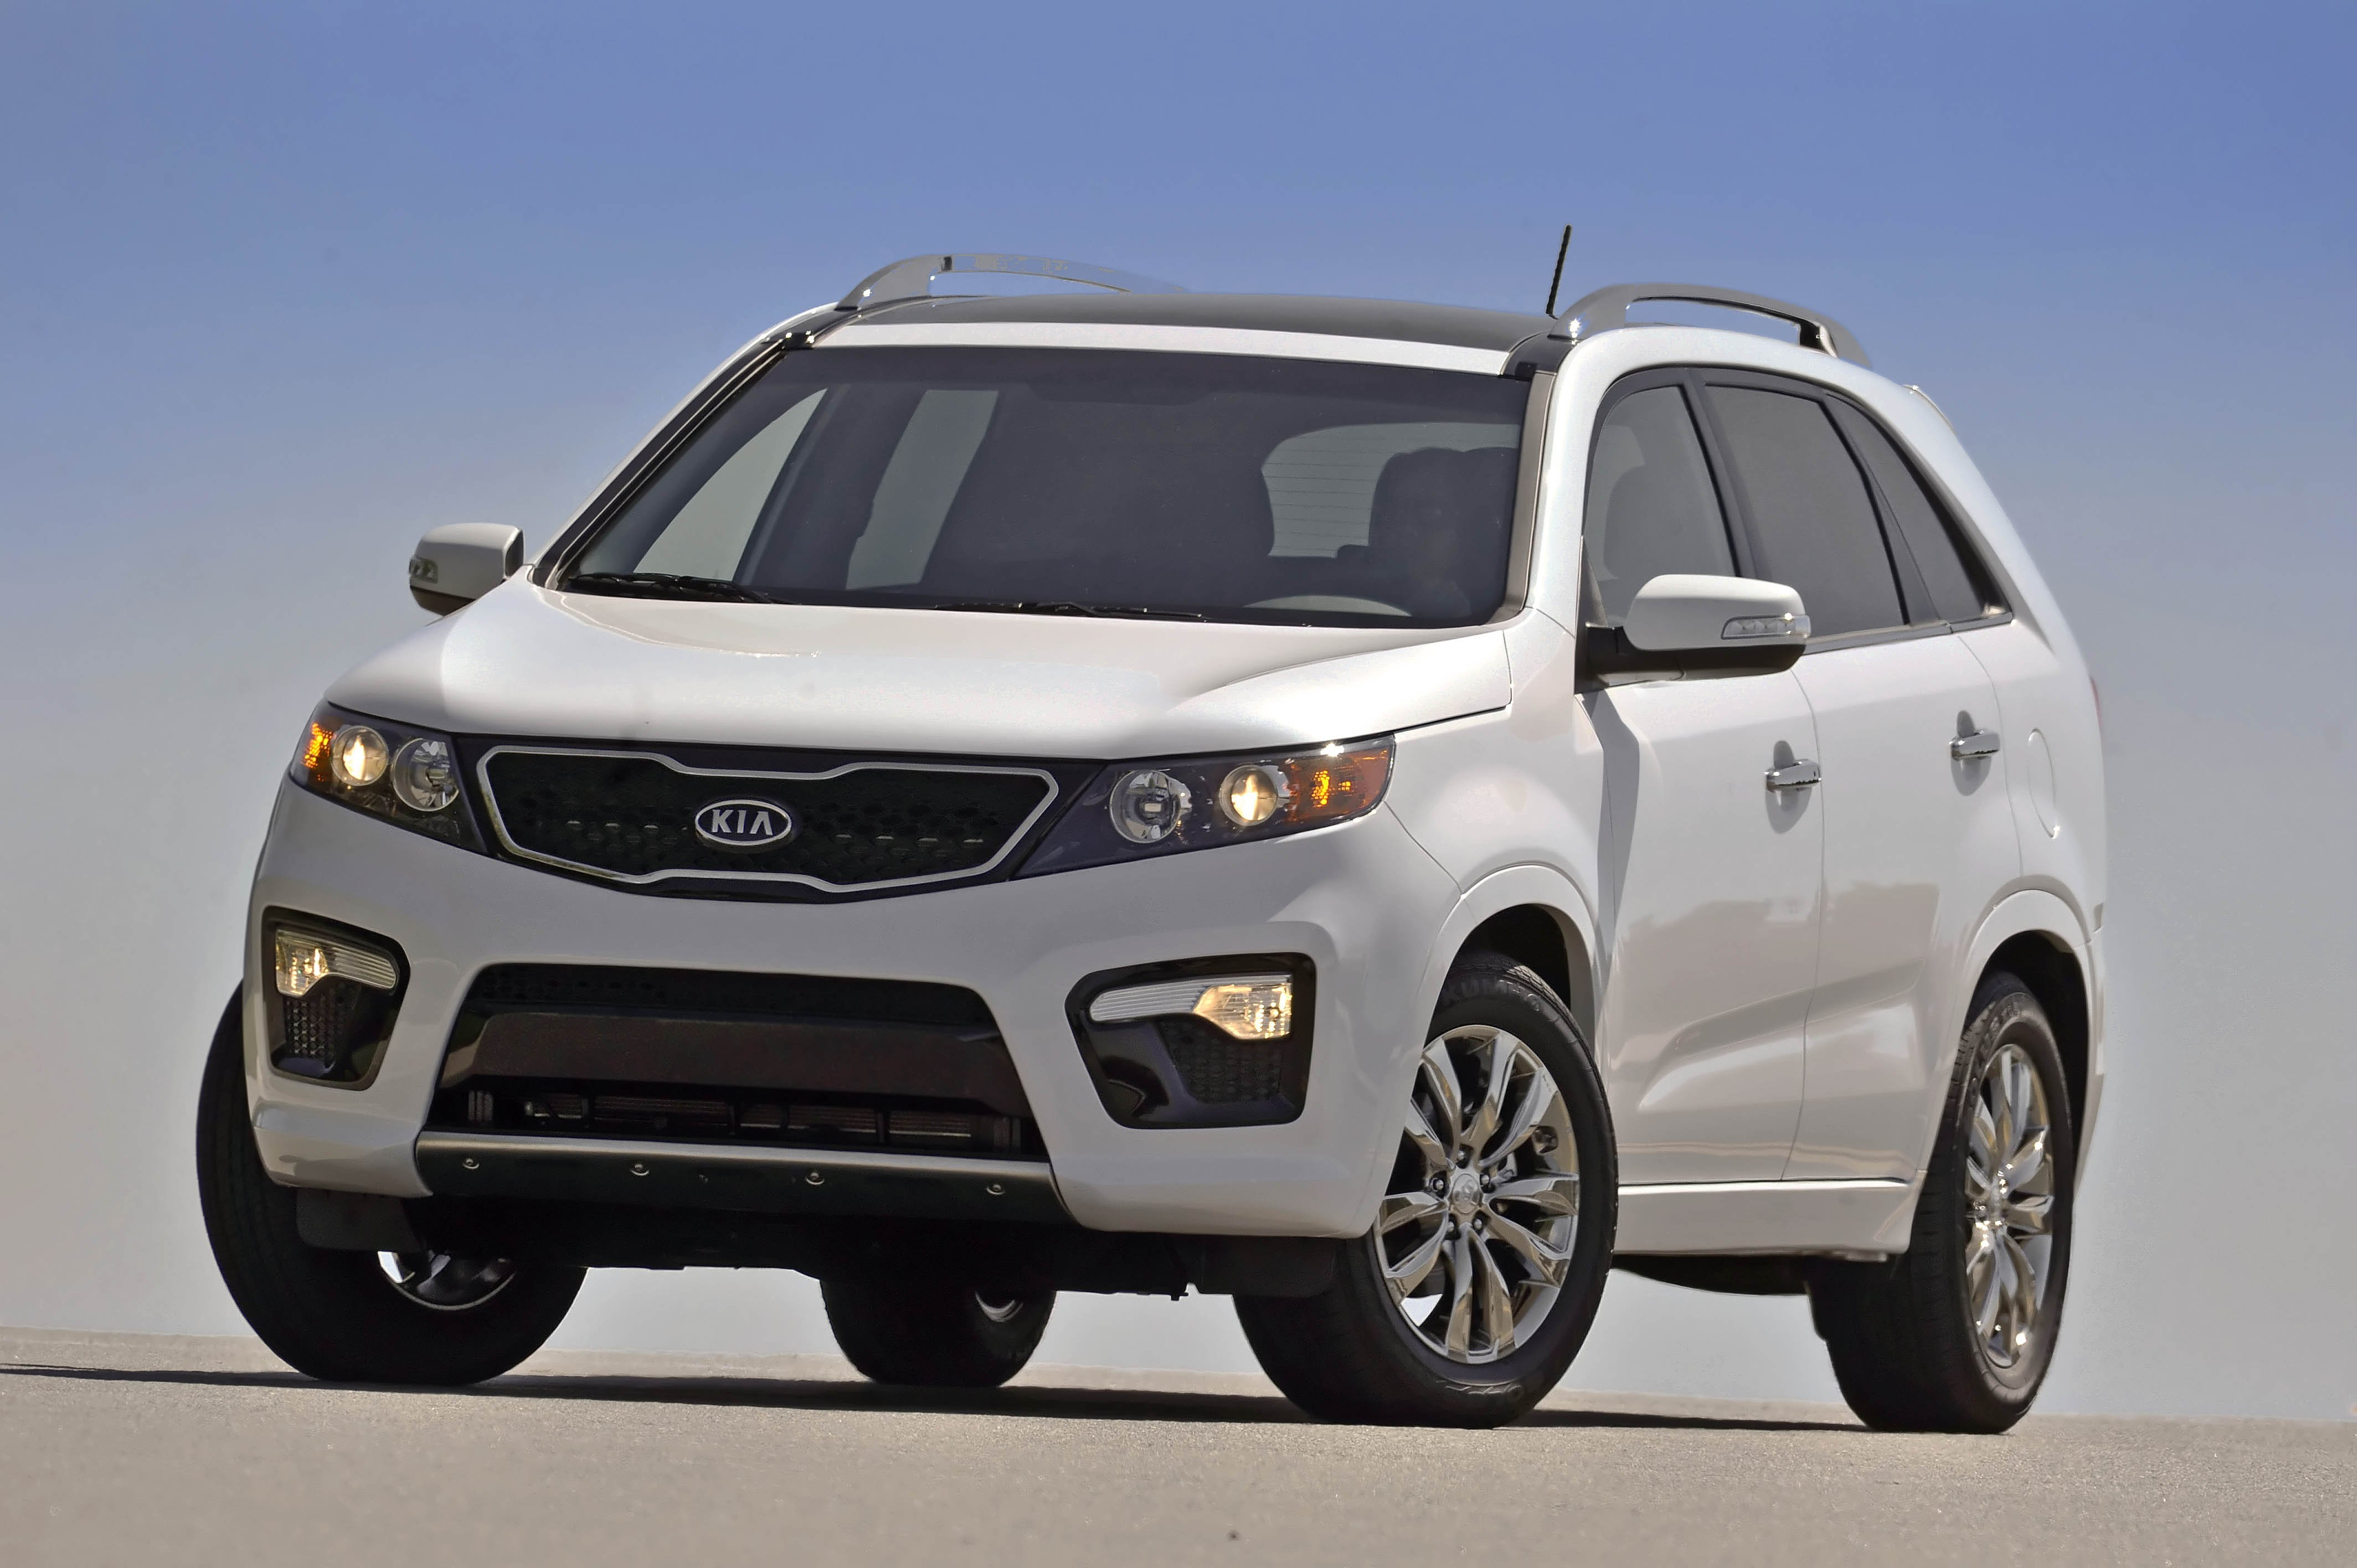 sorento price one warranty kia free financing available year listing